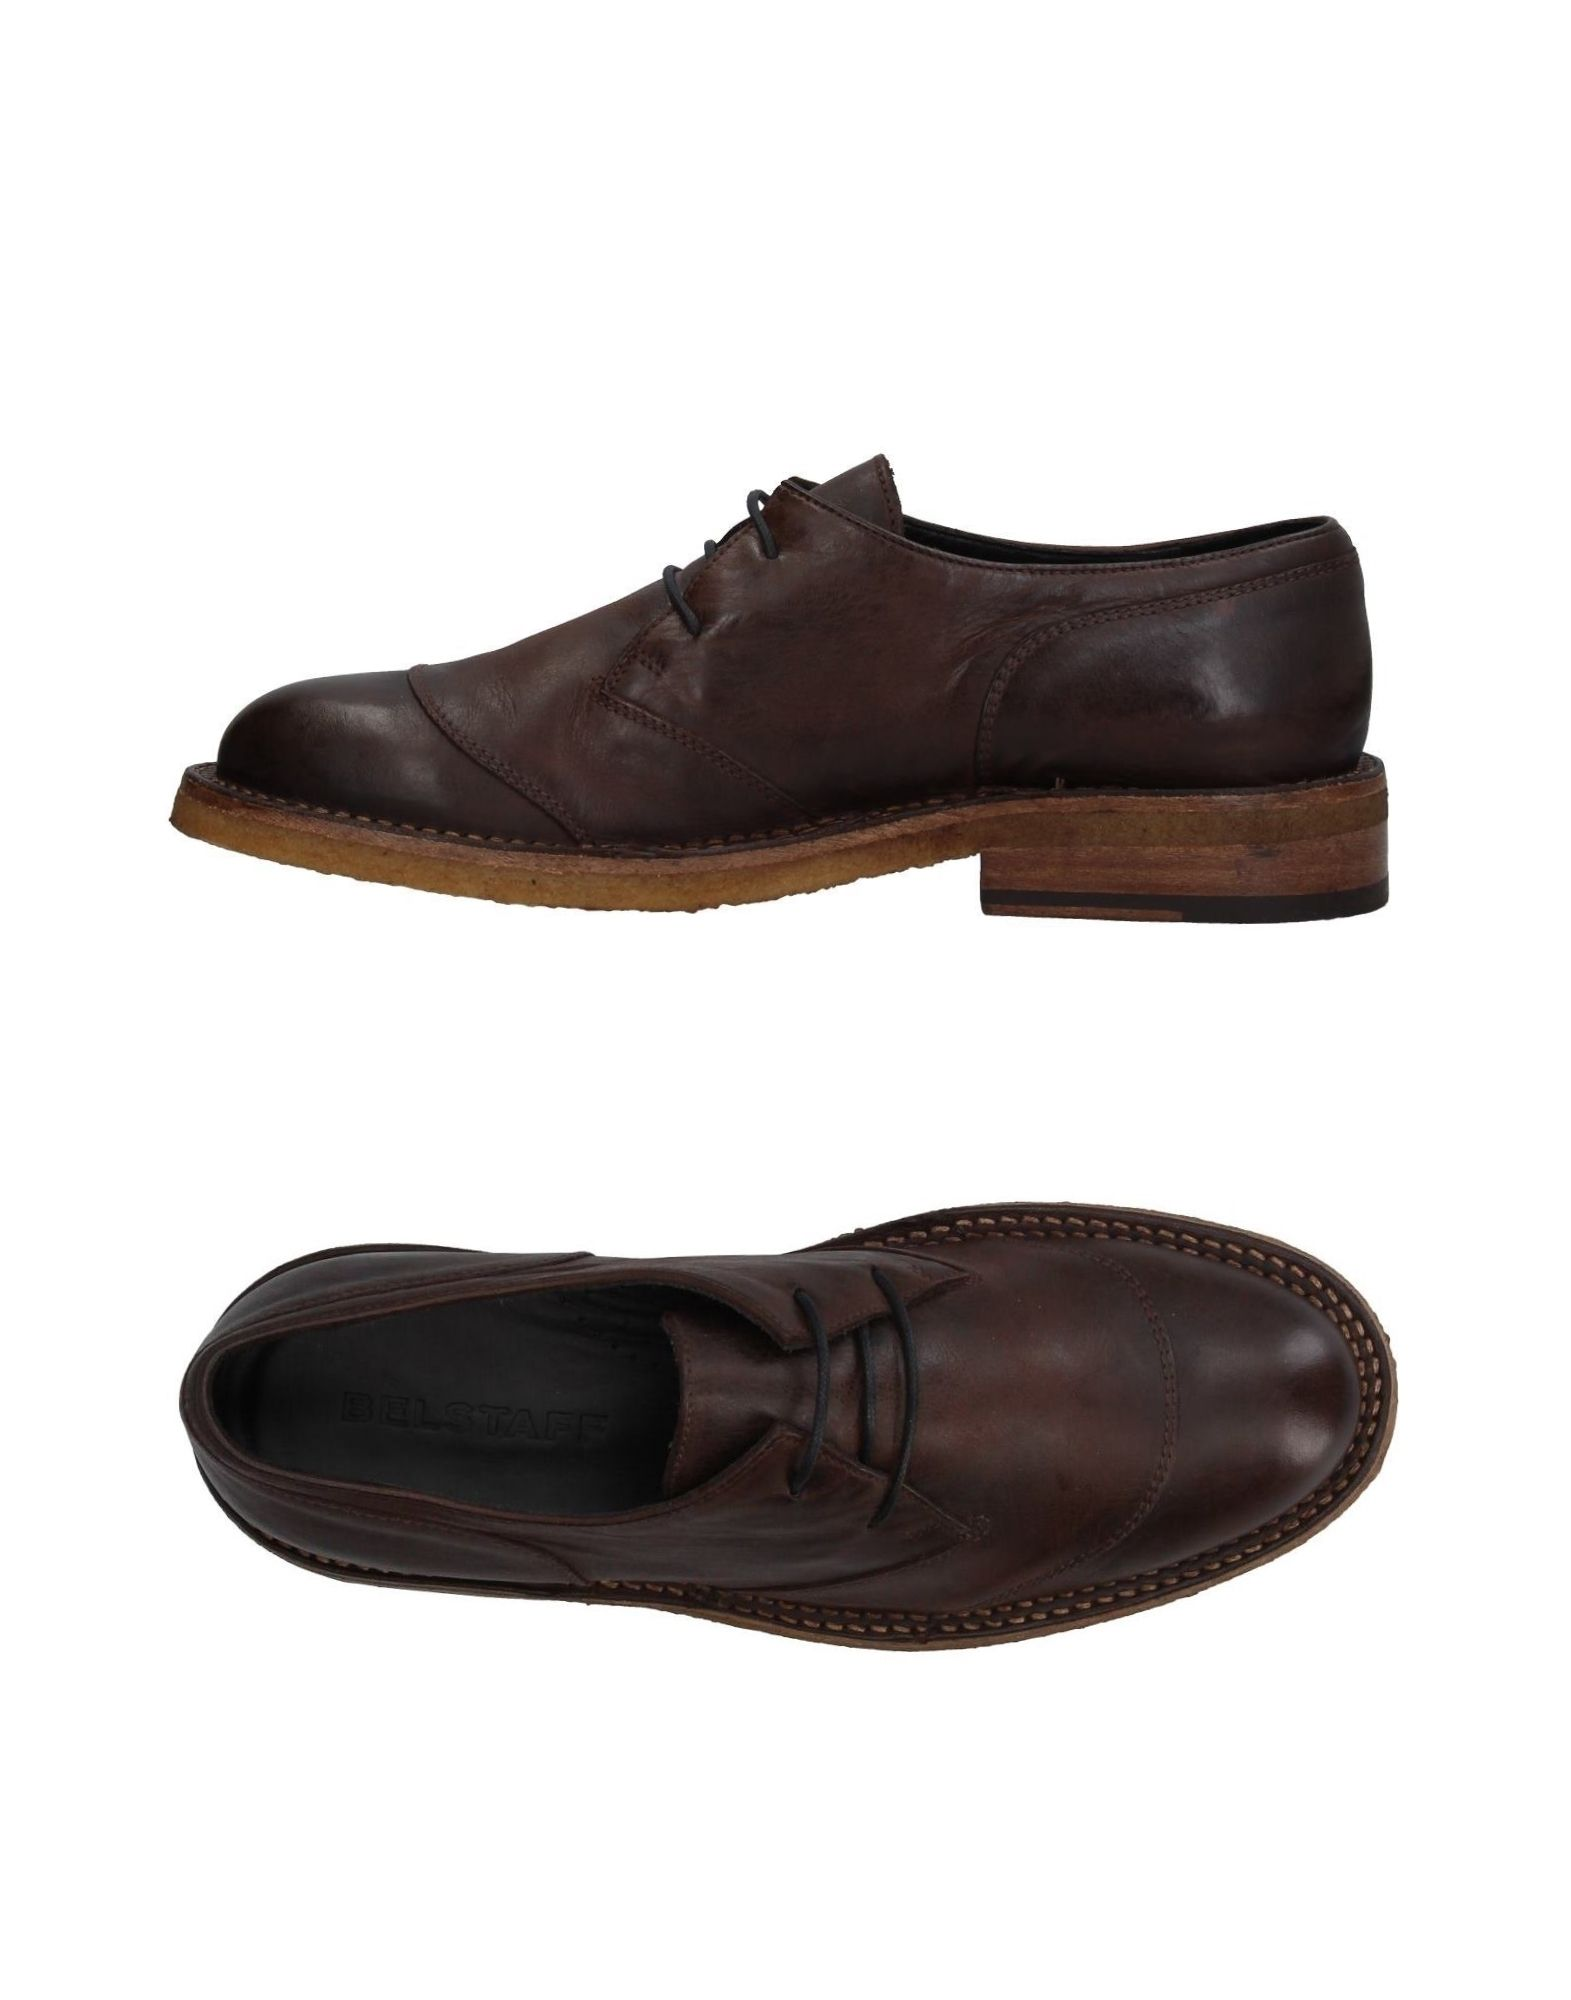 Chaussures À Lacets Belstaff Homme - Chaussures À Lacets Belstaff sur